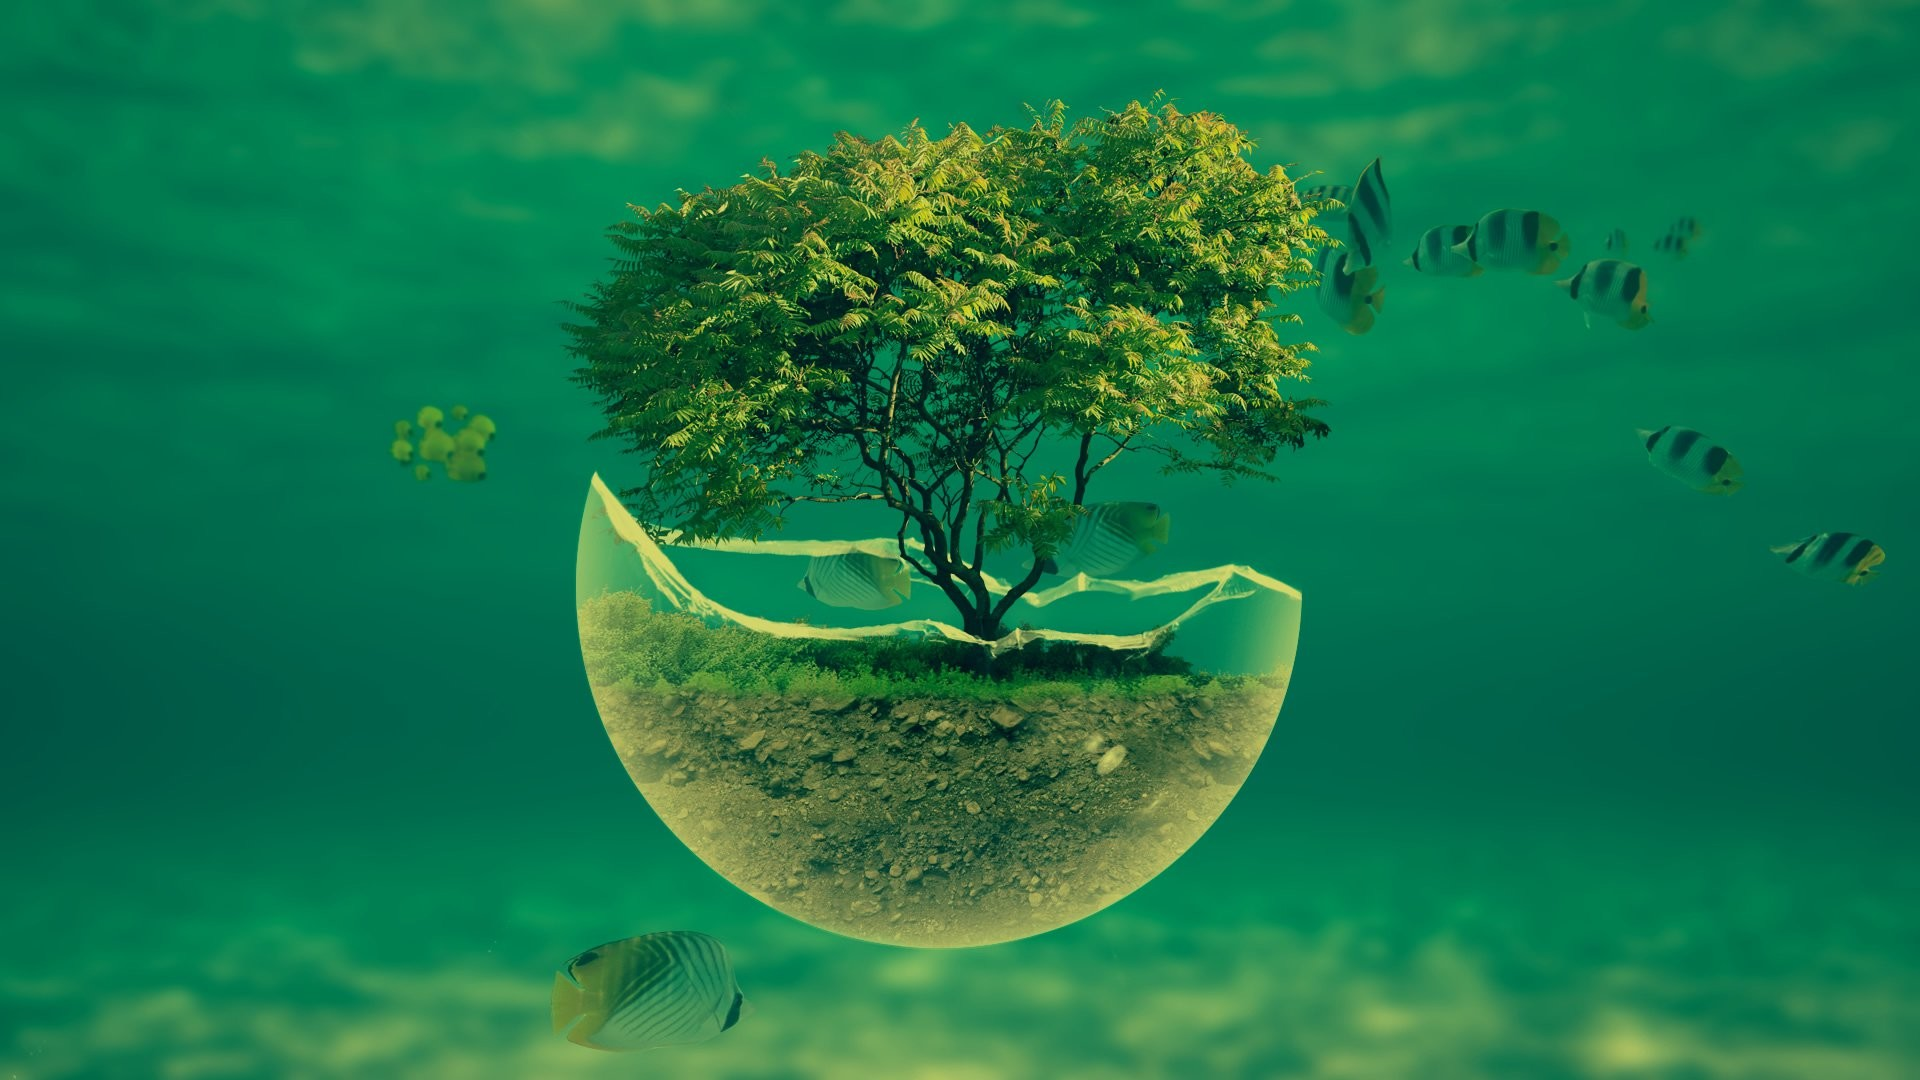 1920x1080 ... 1188_3d_abstract -underwater-tree-widescreen-hd-abstract -desktop-wallpaper ...